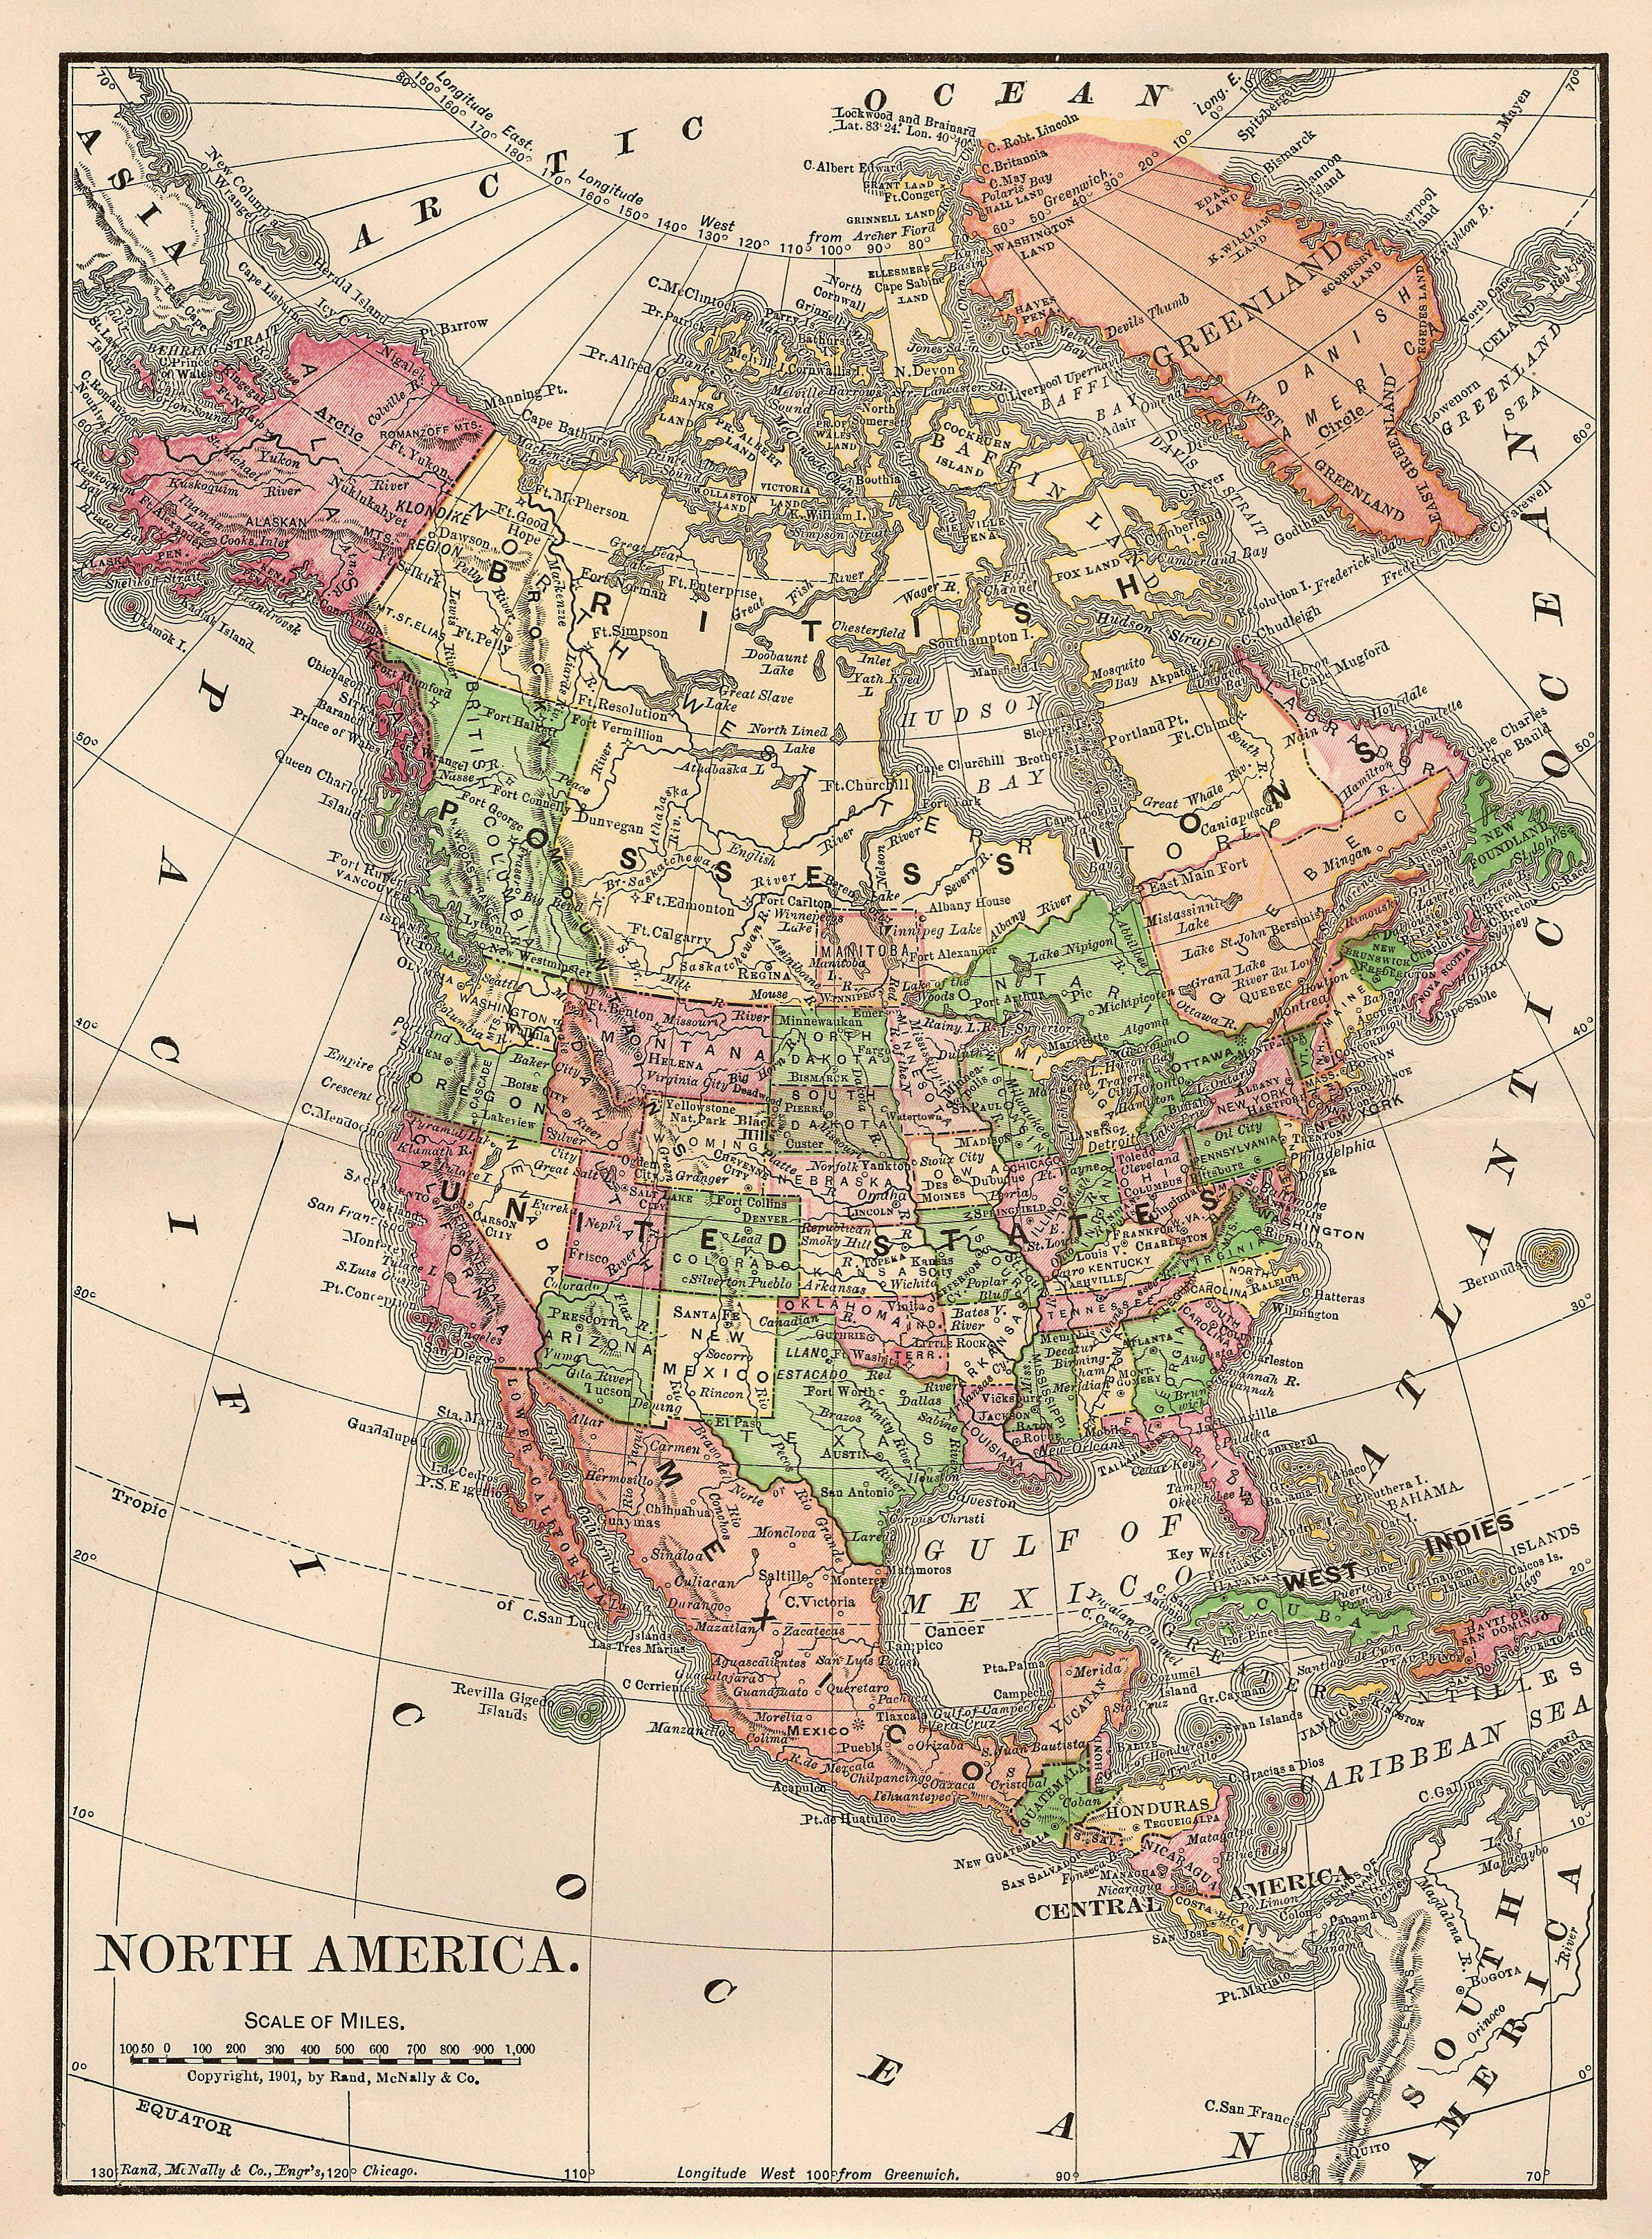 Free North America Map.Catnipstudiocollage Free Vintage Clip Art Map Of North America